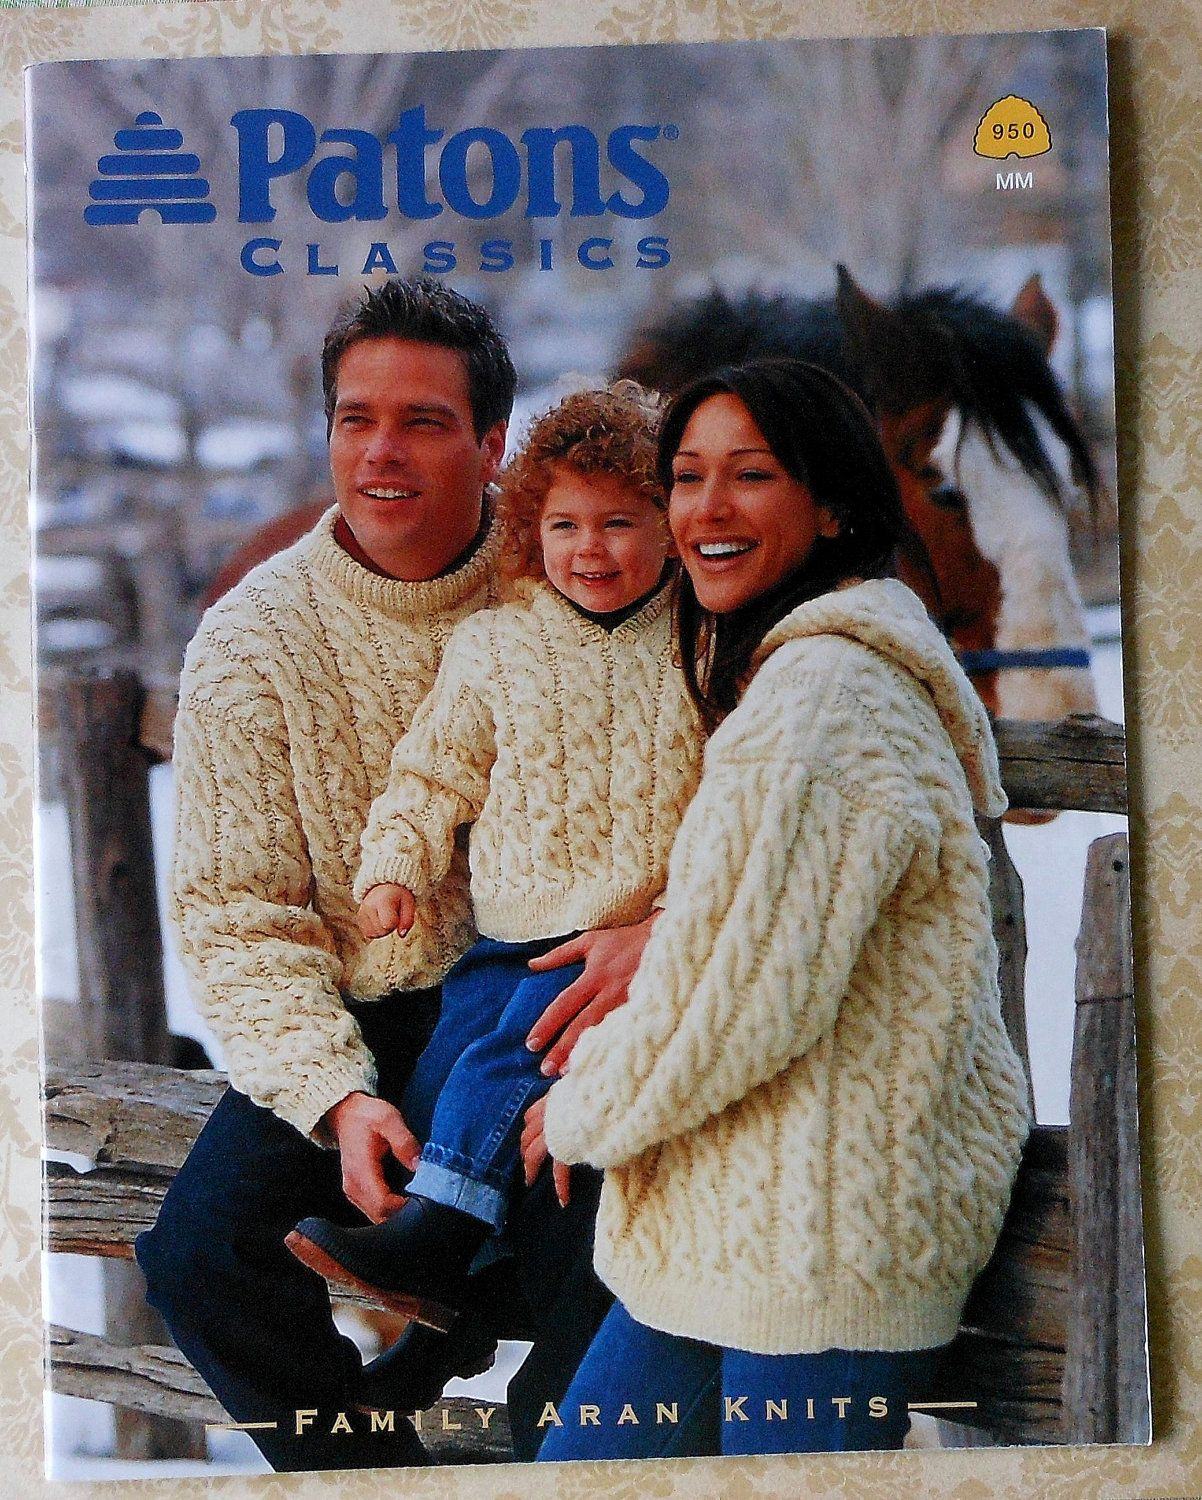 af1160b9bece7 Patons Classic Family Aran Knits Knitting Pattern Booklet